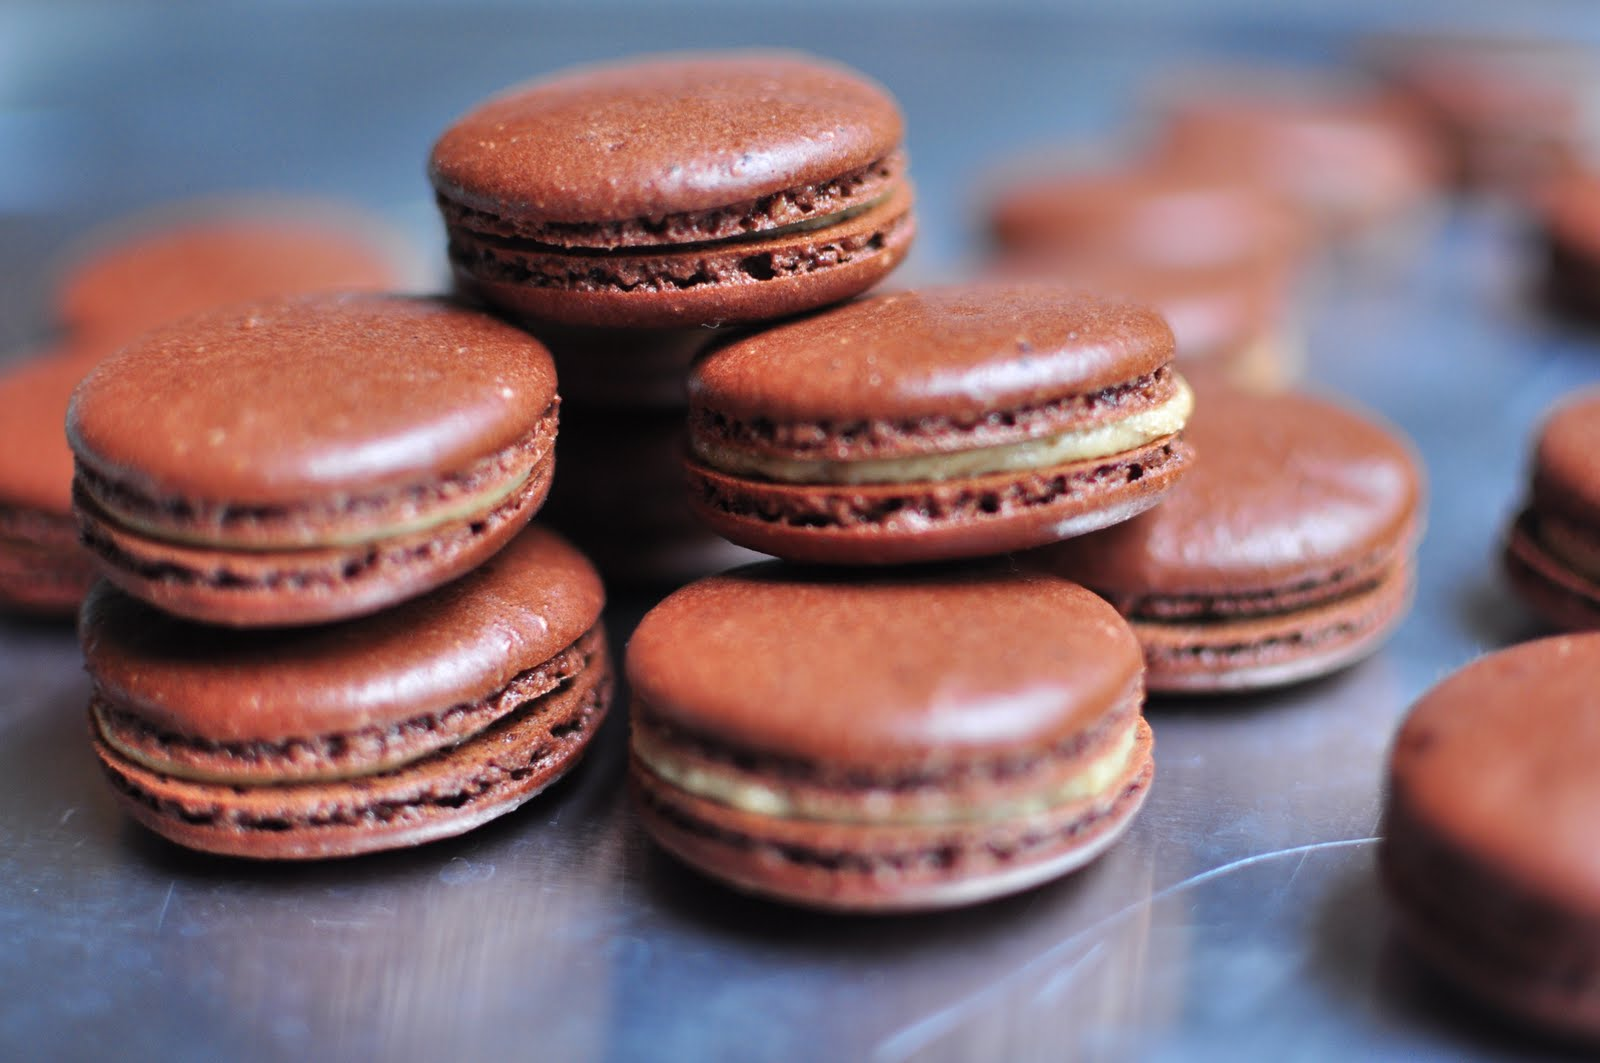 The Kitchen Guardian: Rainy Sunday and Chocolate Macarons